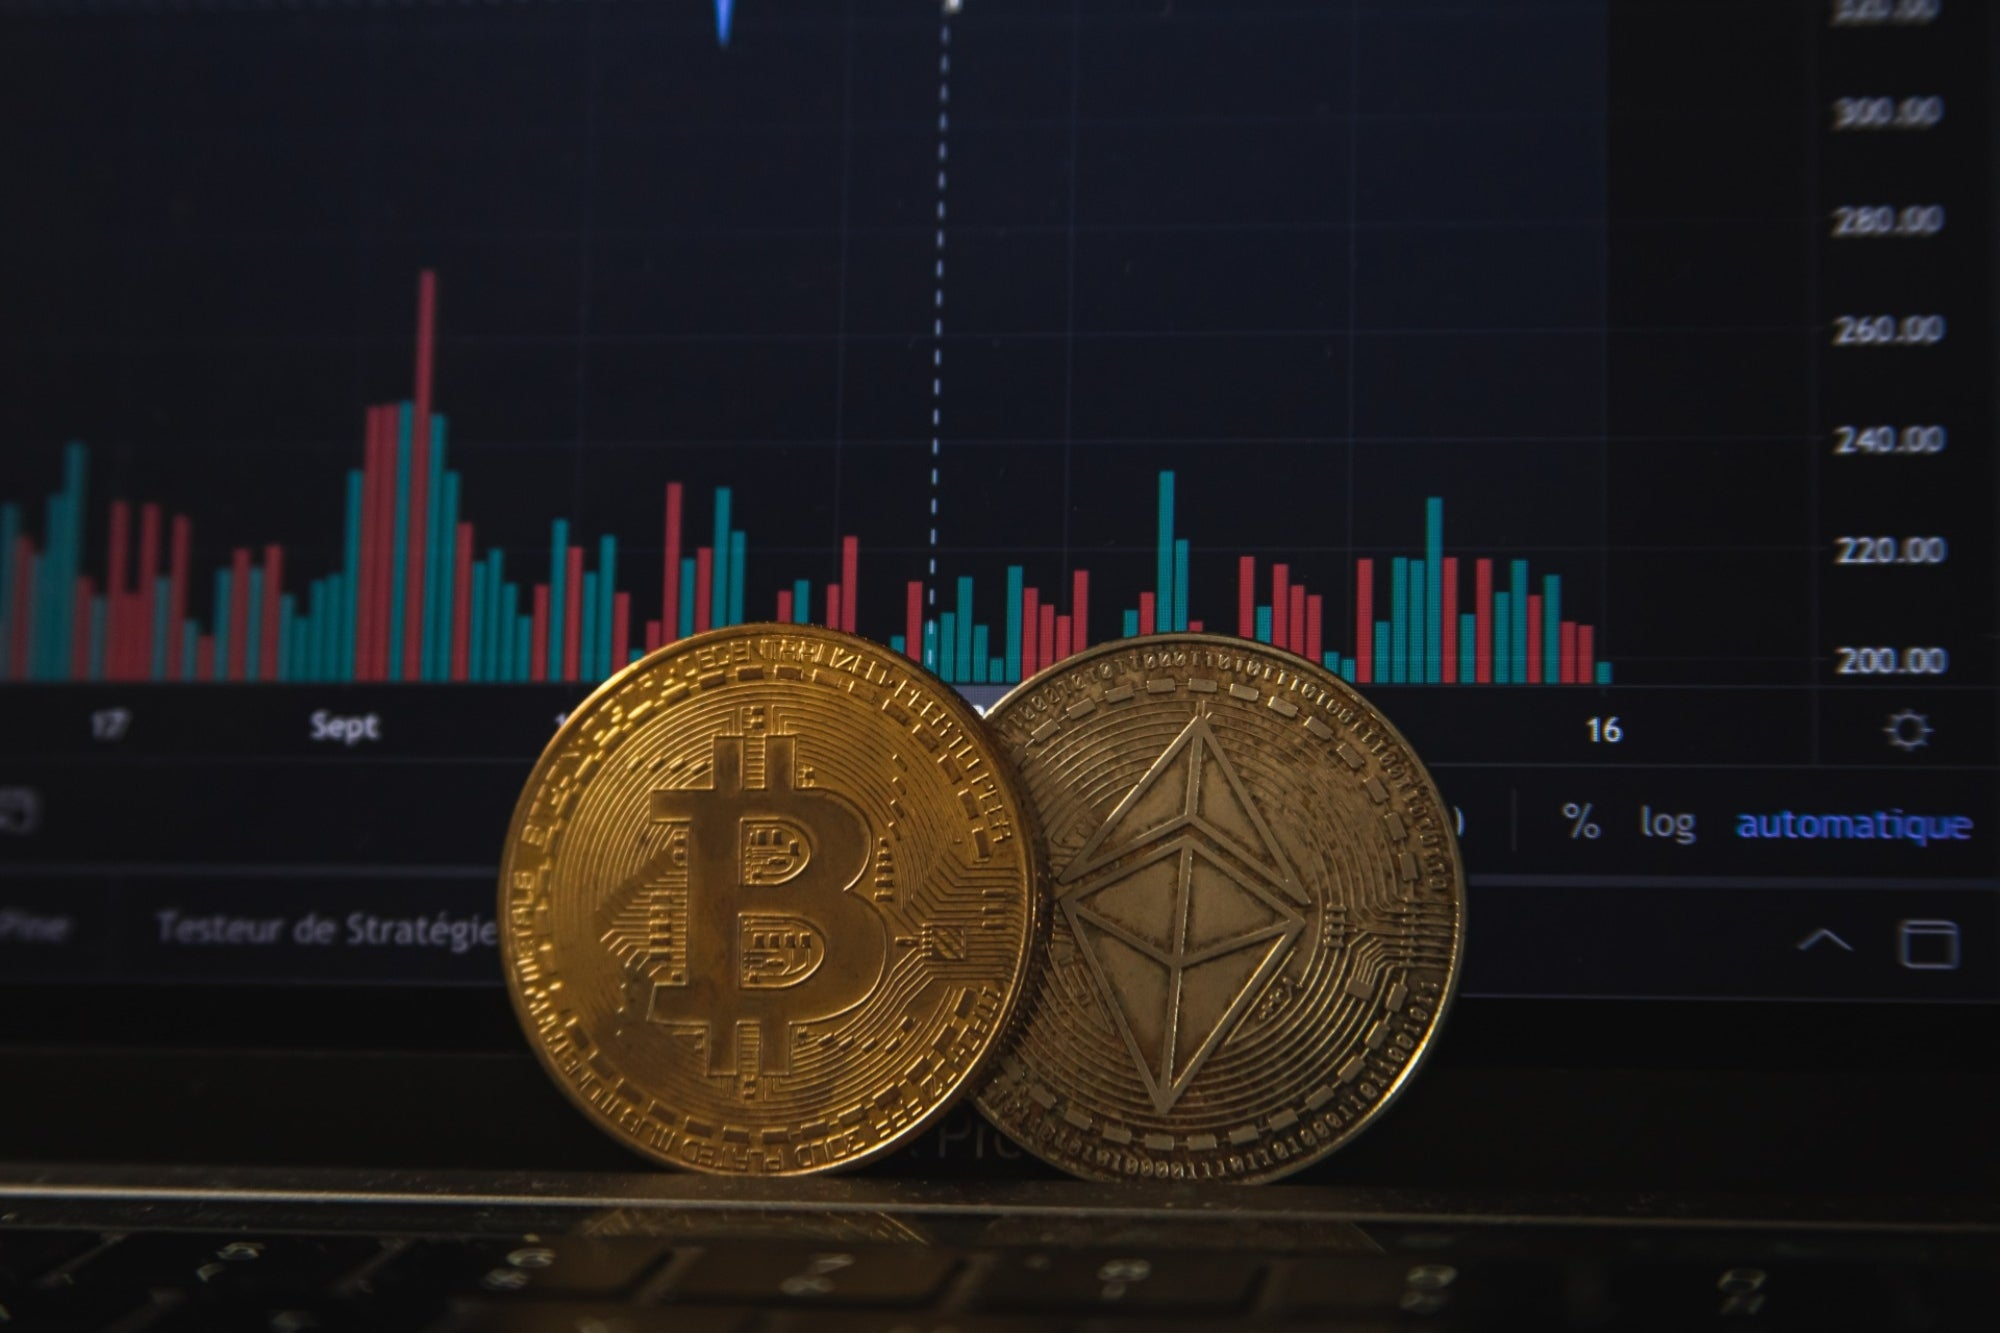 Bitcoin Wave This Time Sees Mature Investor Participation